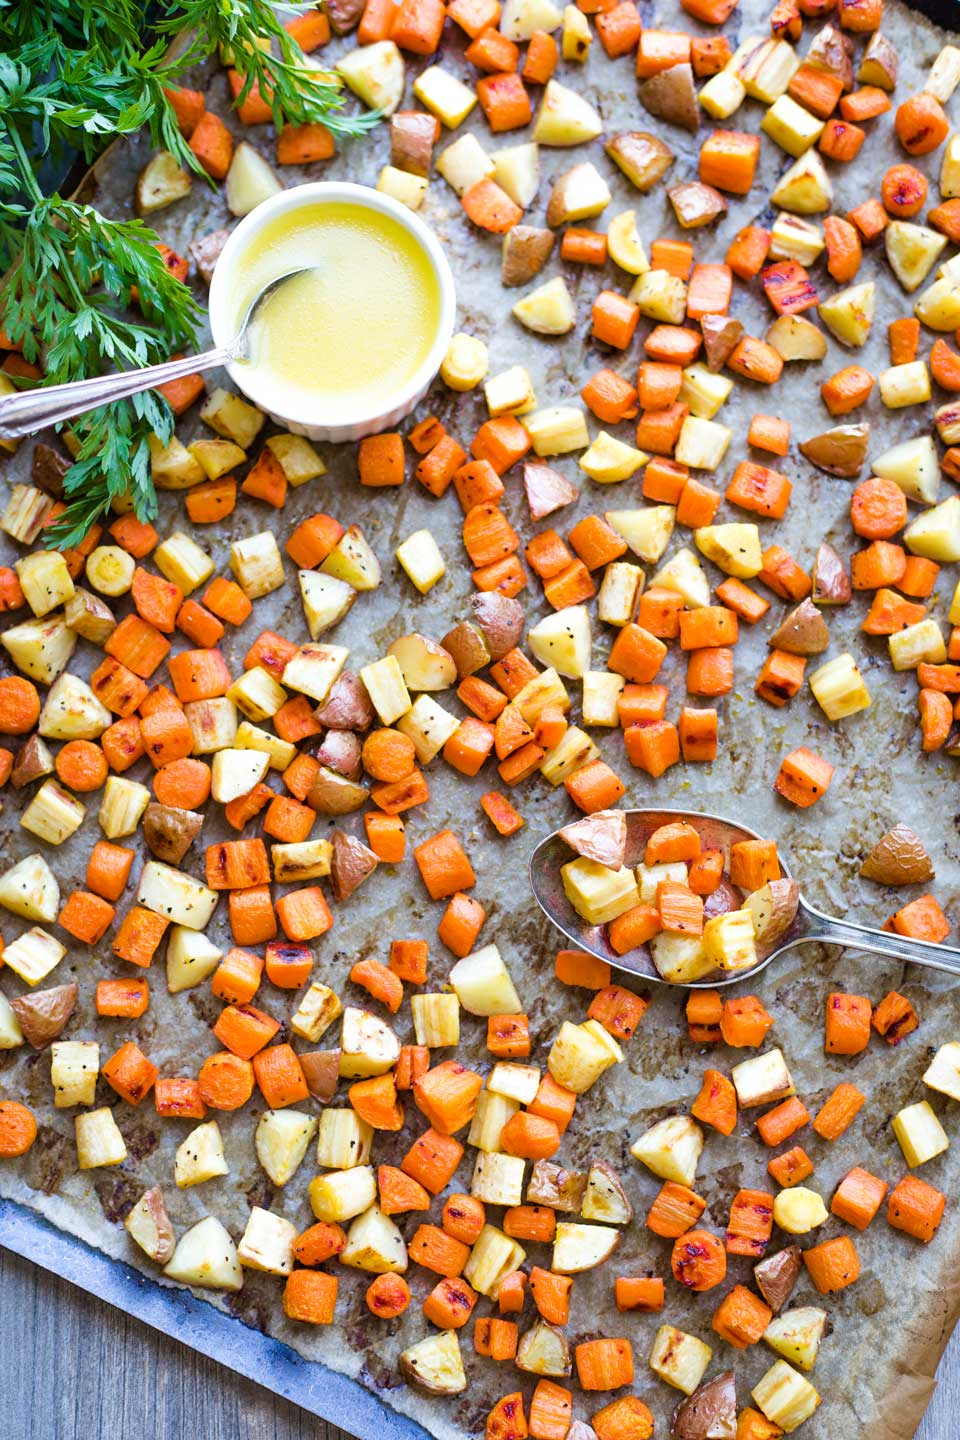 overhead of sheet pan with roasted veggies, a serving spoon, and a small bowl of drizzle